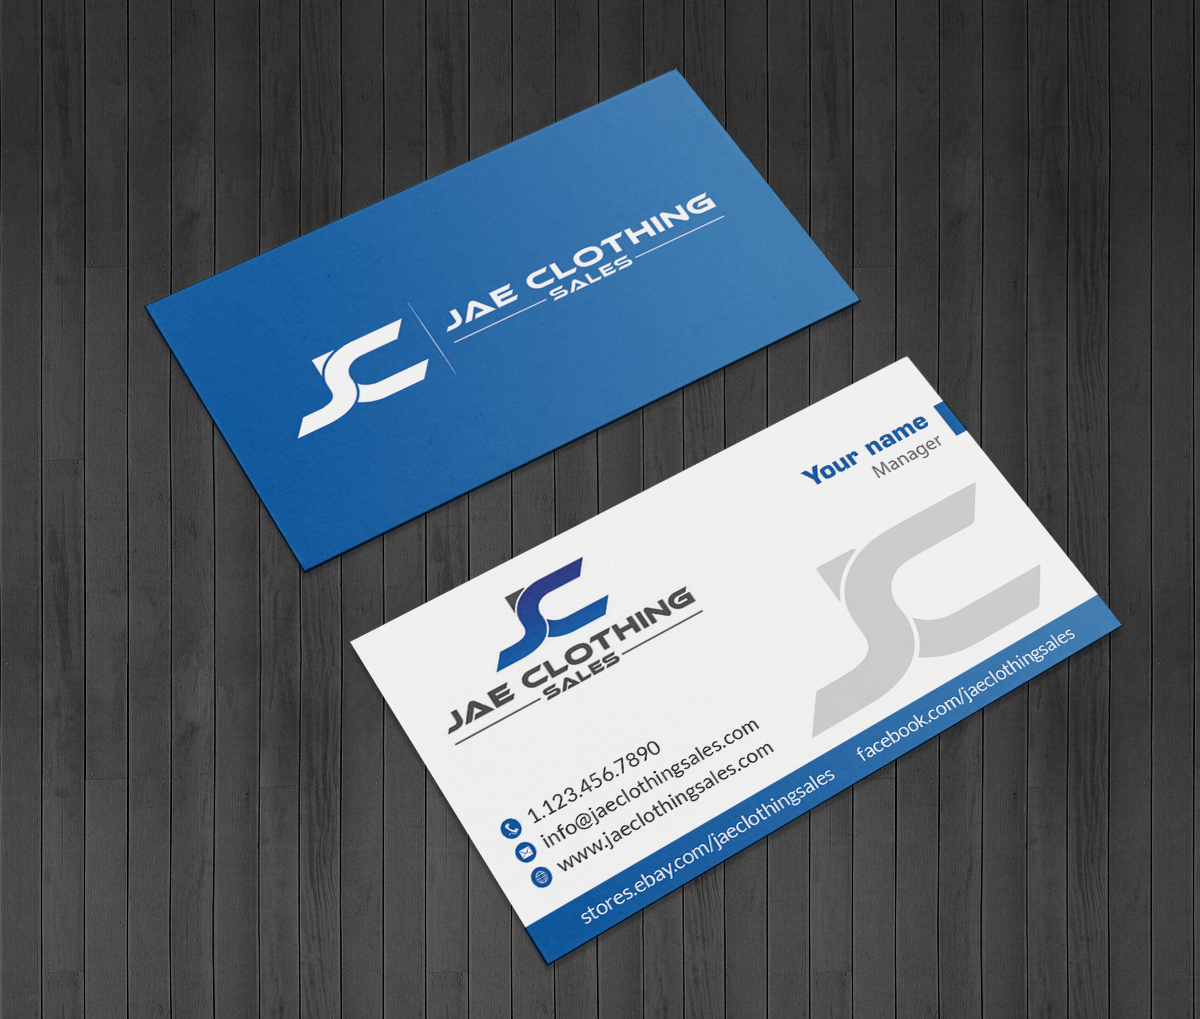 Bold modern online shopping business card design for jae sales llc bold modern online shopping business card design for jae sales llc in united states design 7045481 reheart Gallery